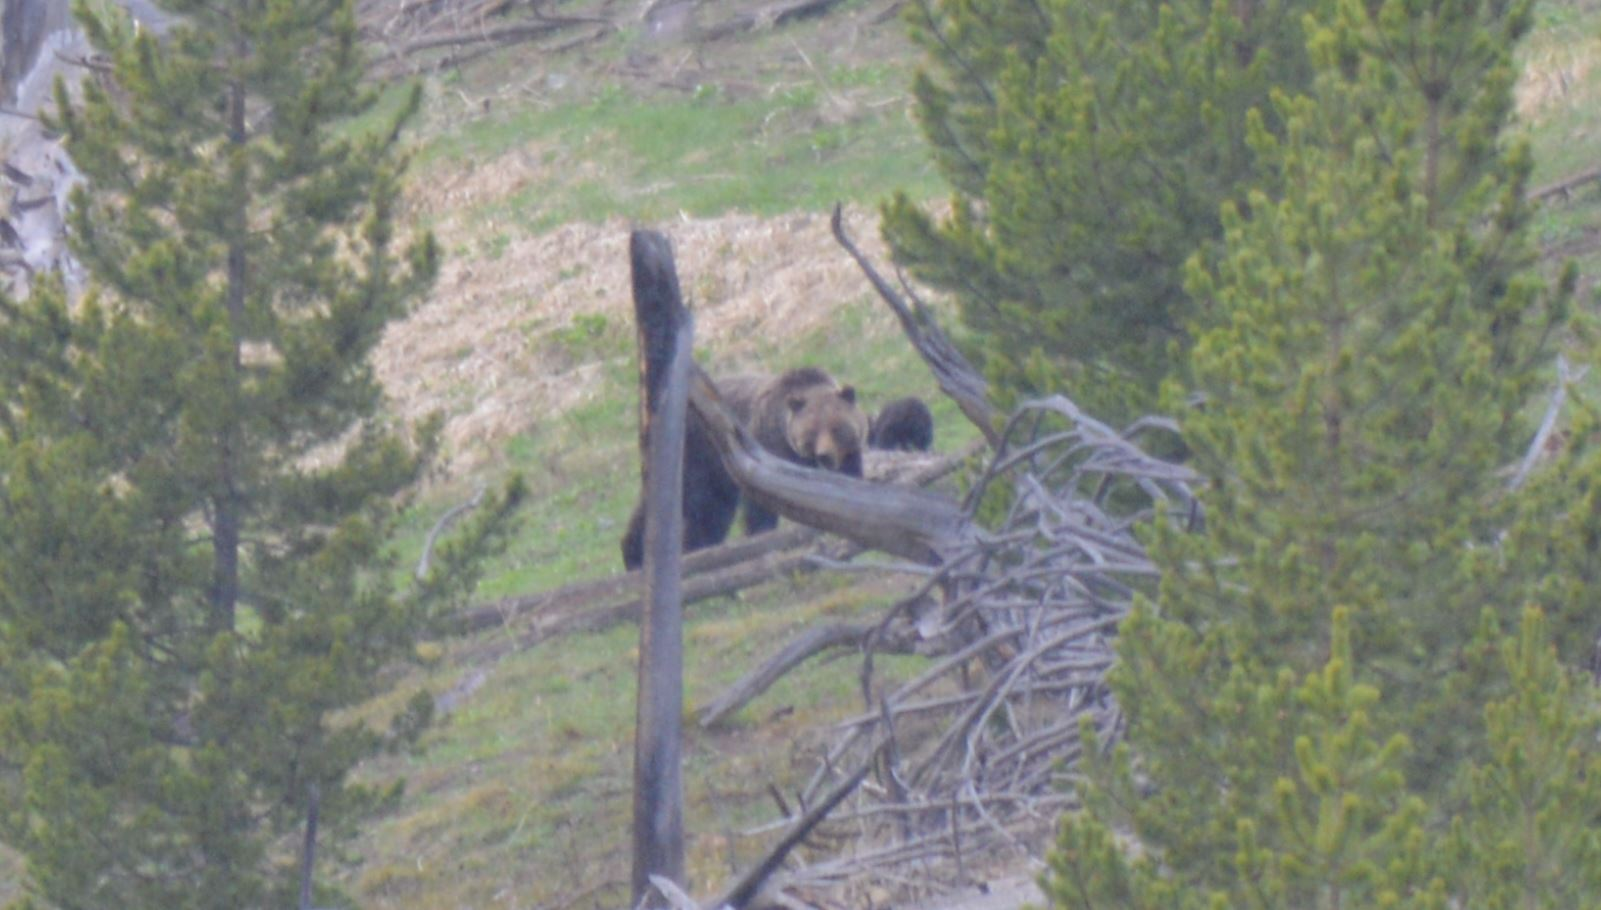 Mama grizz with cubs, Yellowstone, May 2013